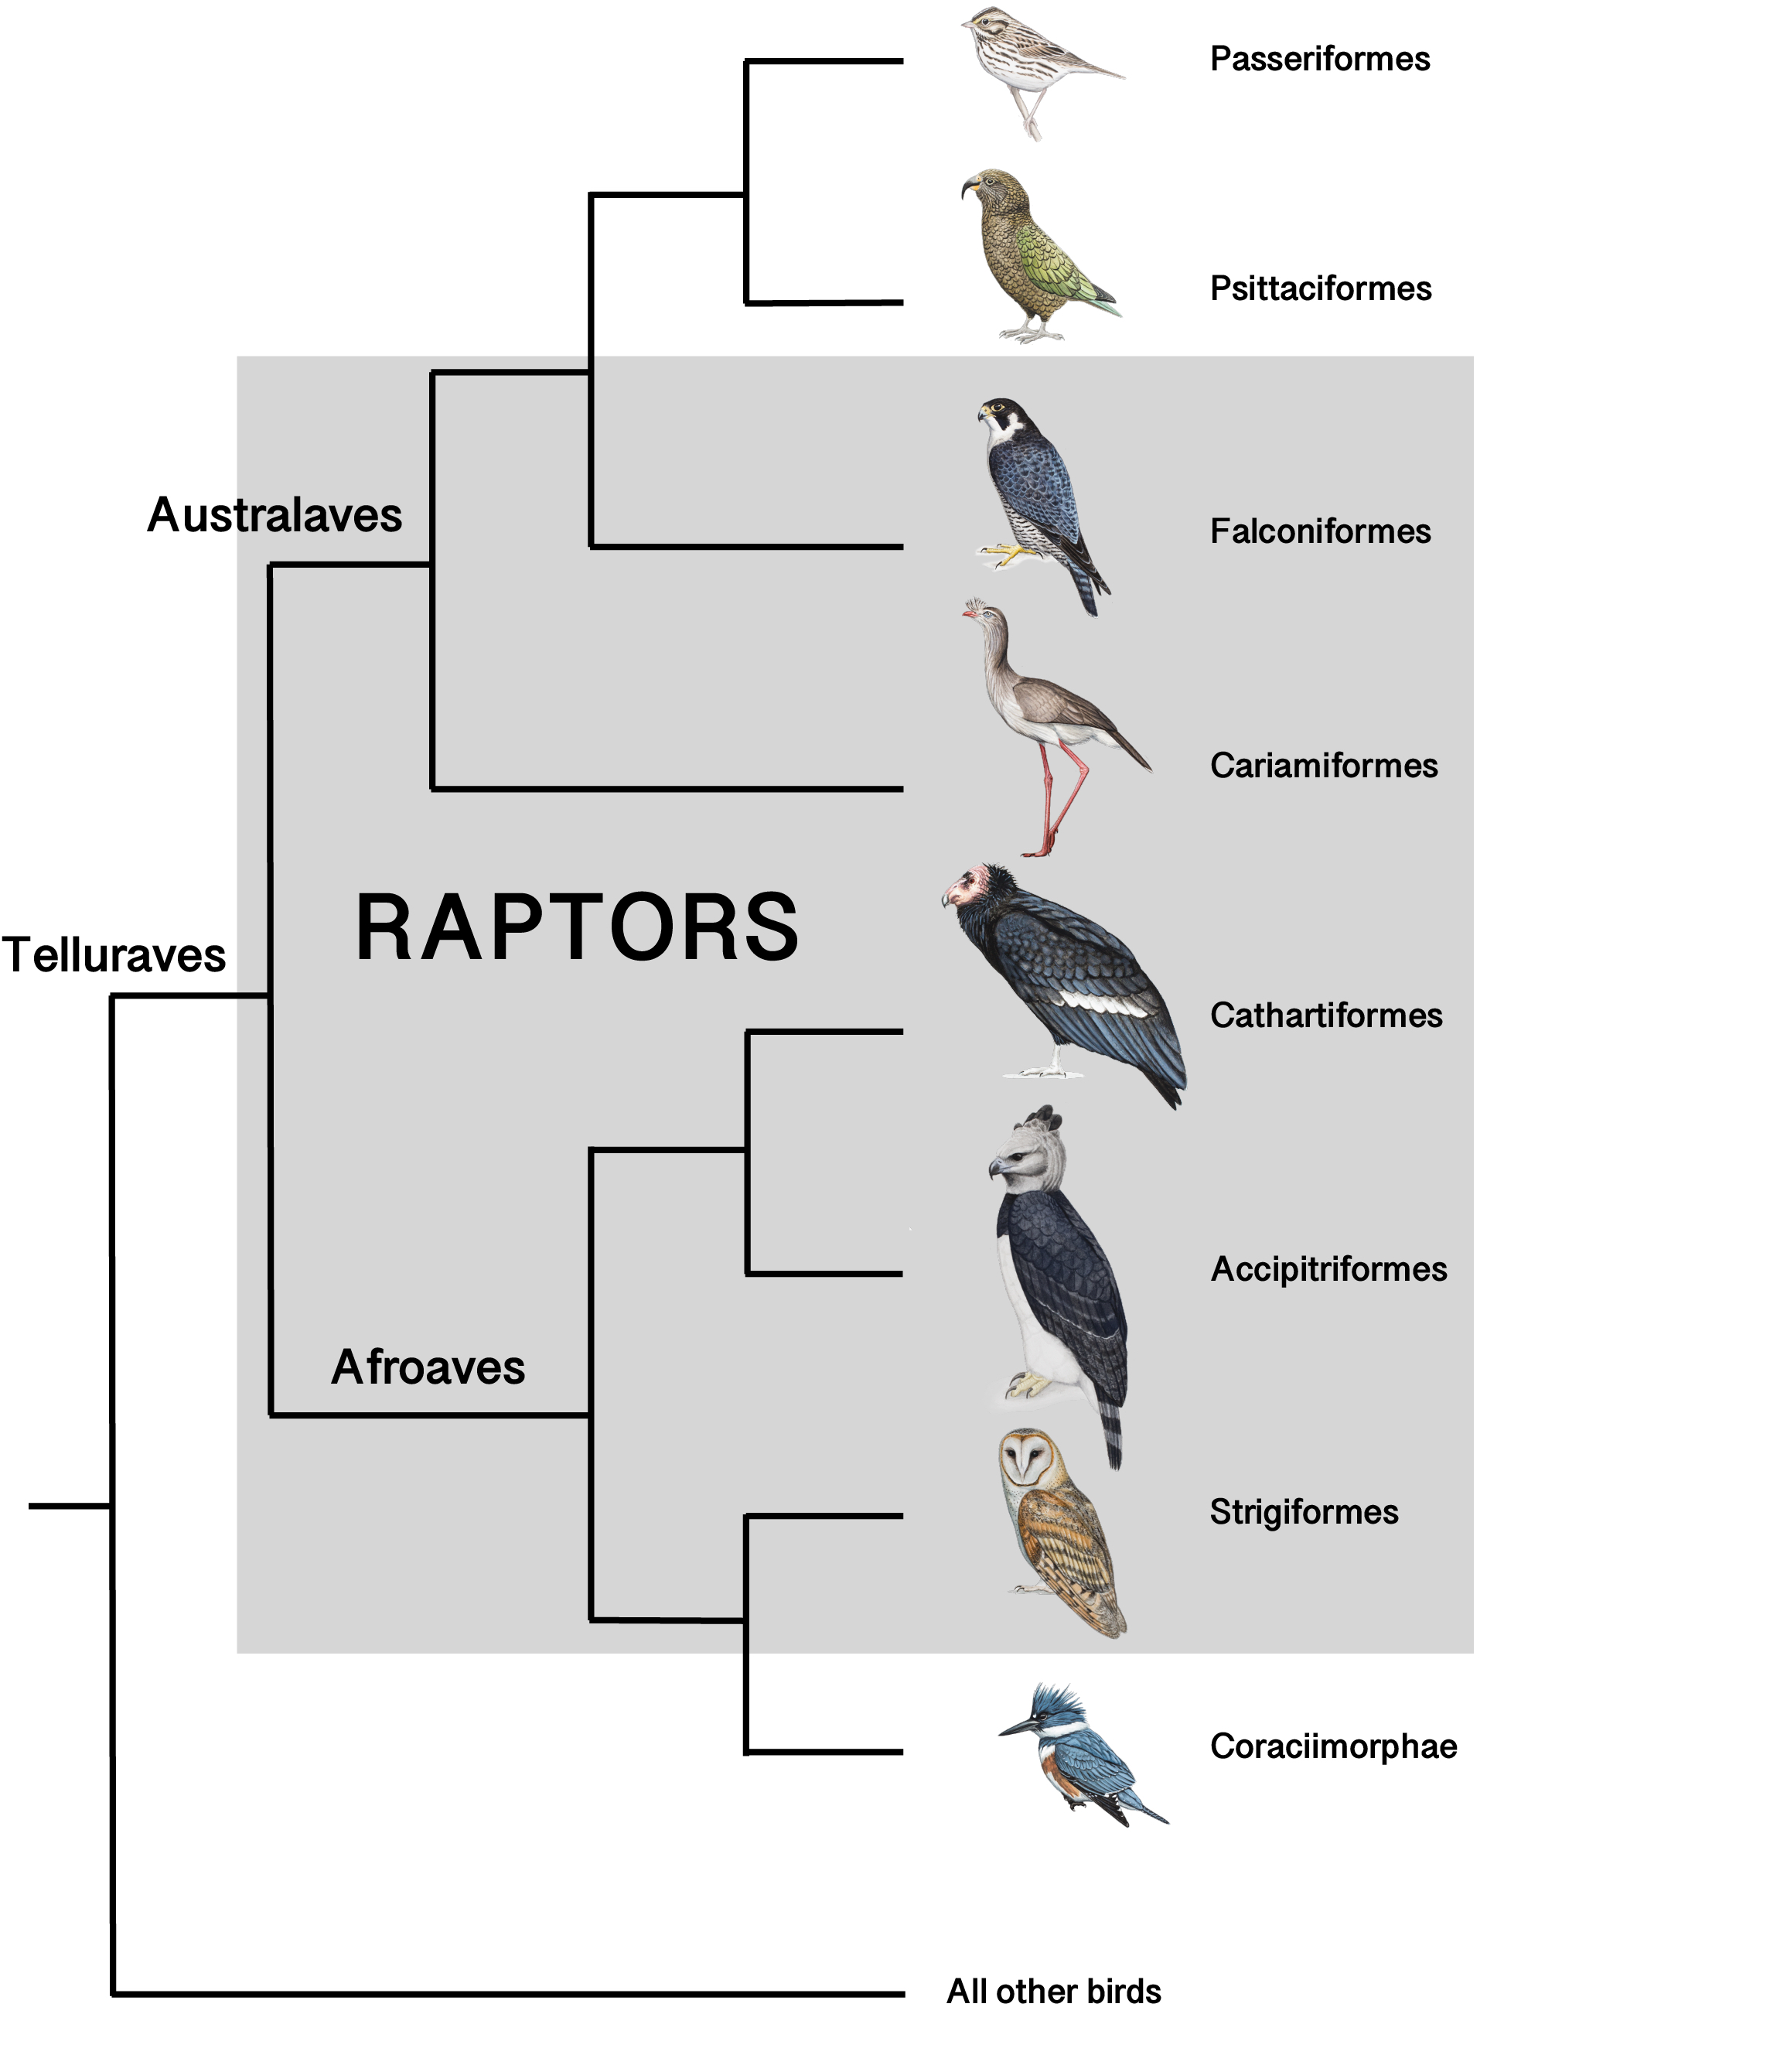 Raptor Cladogram